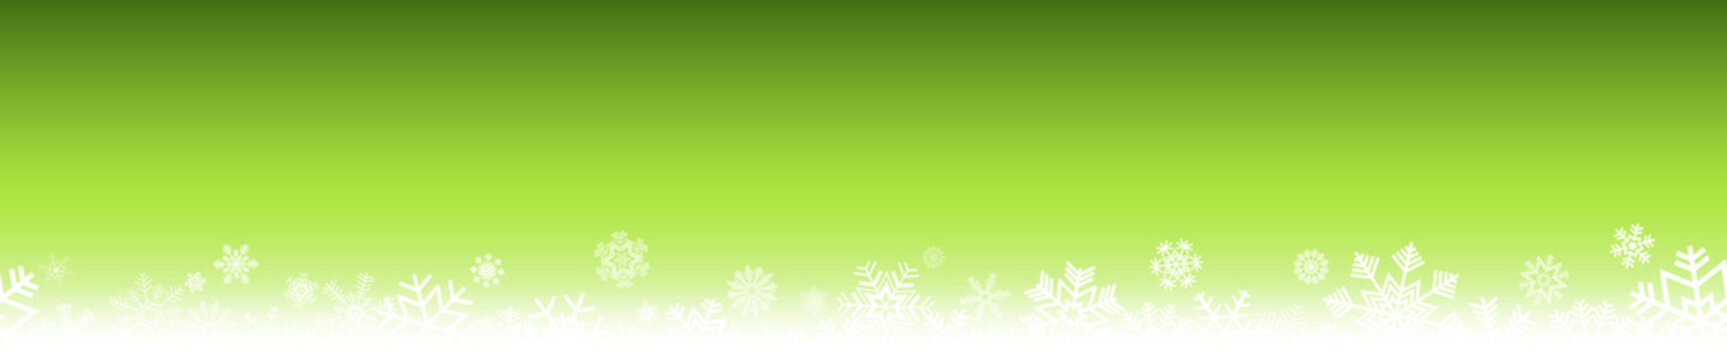 abstract christmas snow flakes backdrop